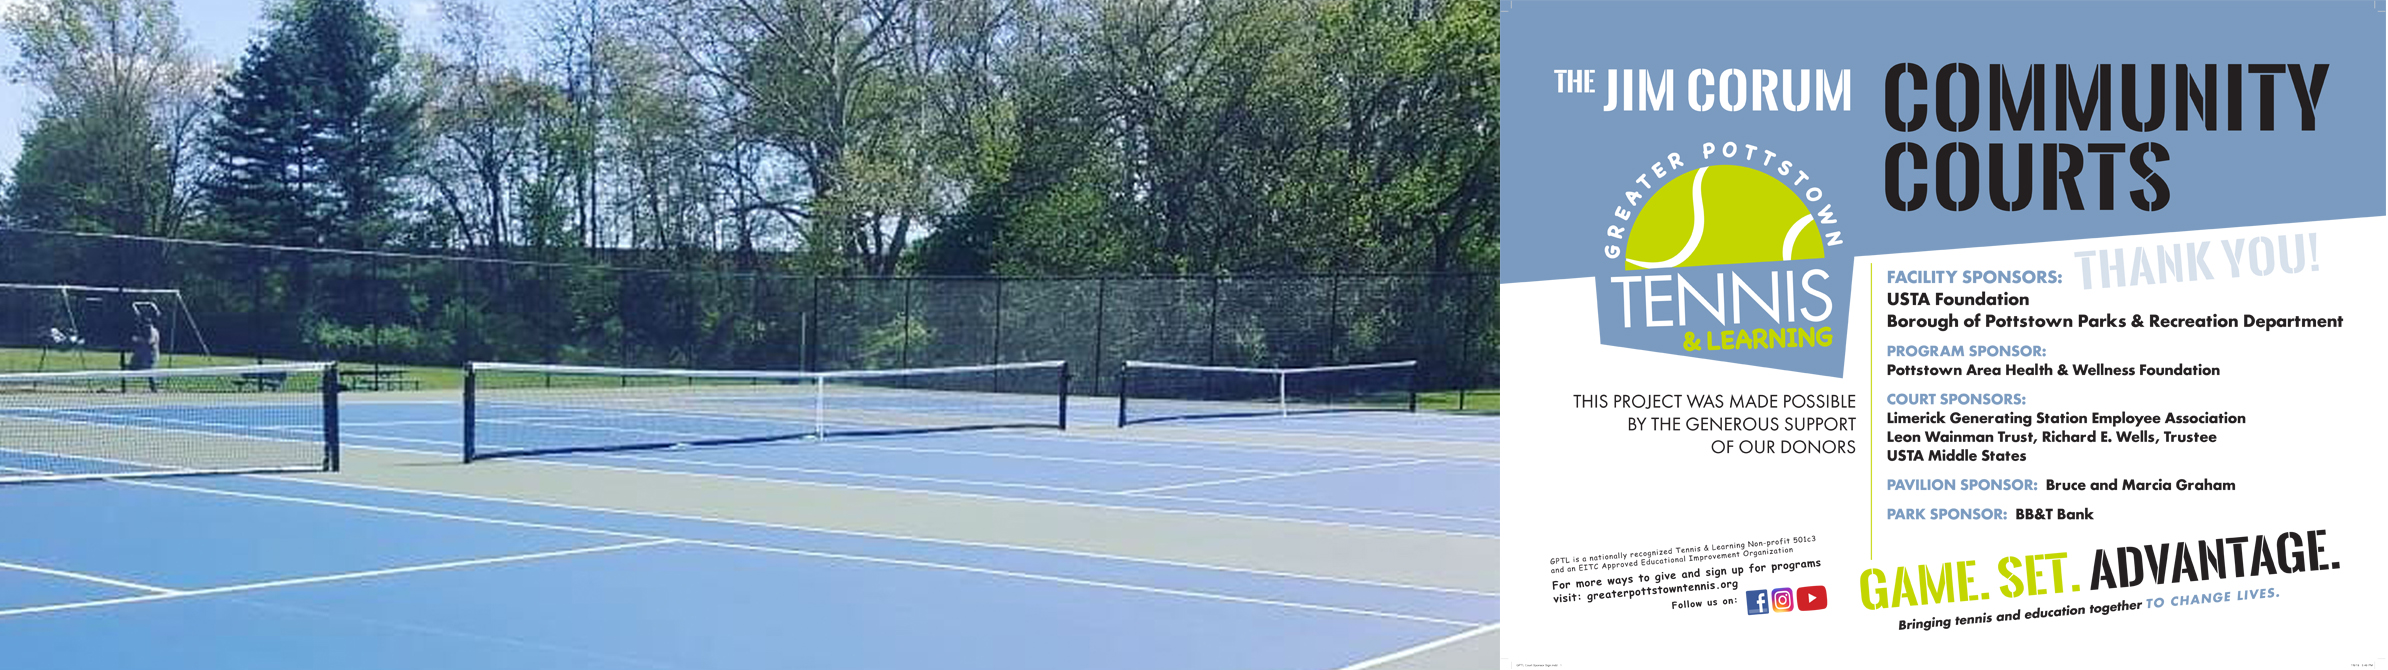 New Maple St. Park Tennis Courts